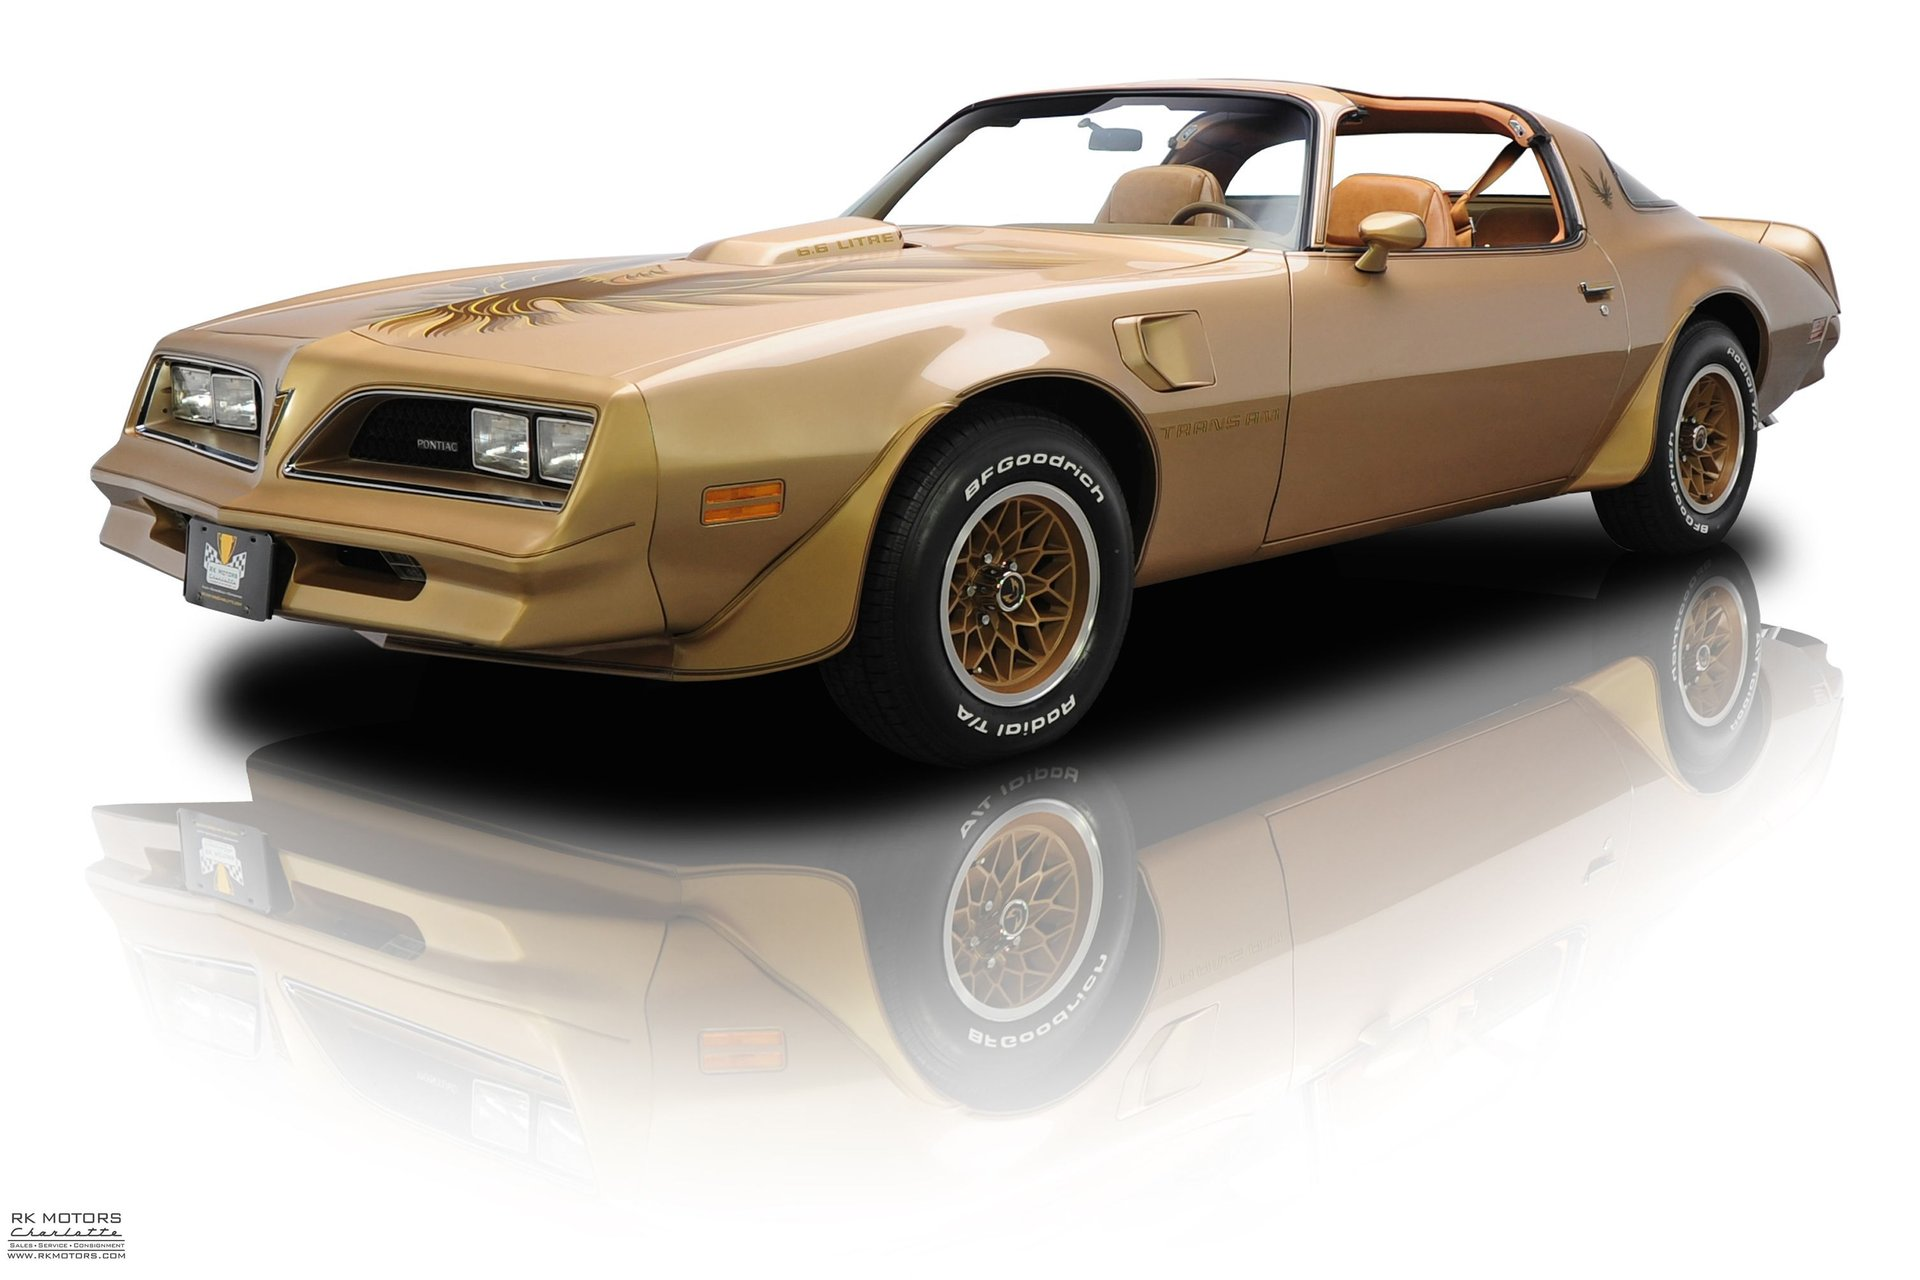 133090 1978 Pontiac Firebird Rk Motors Classic Cars And Muscle Cars For Sale